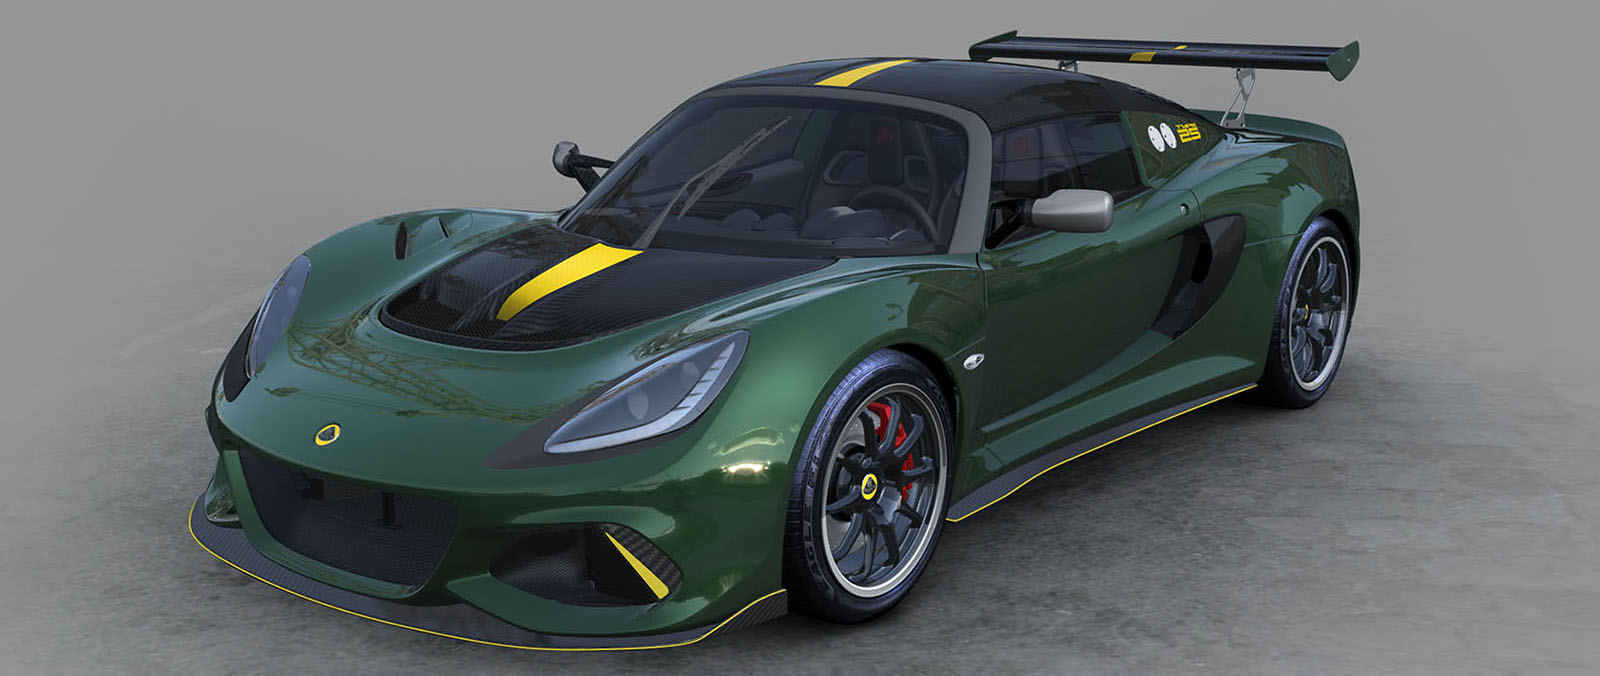 De Lotus Exige Cup 430 Type 25 Edition